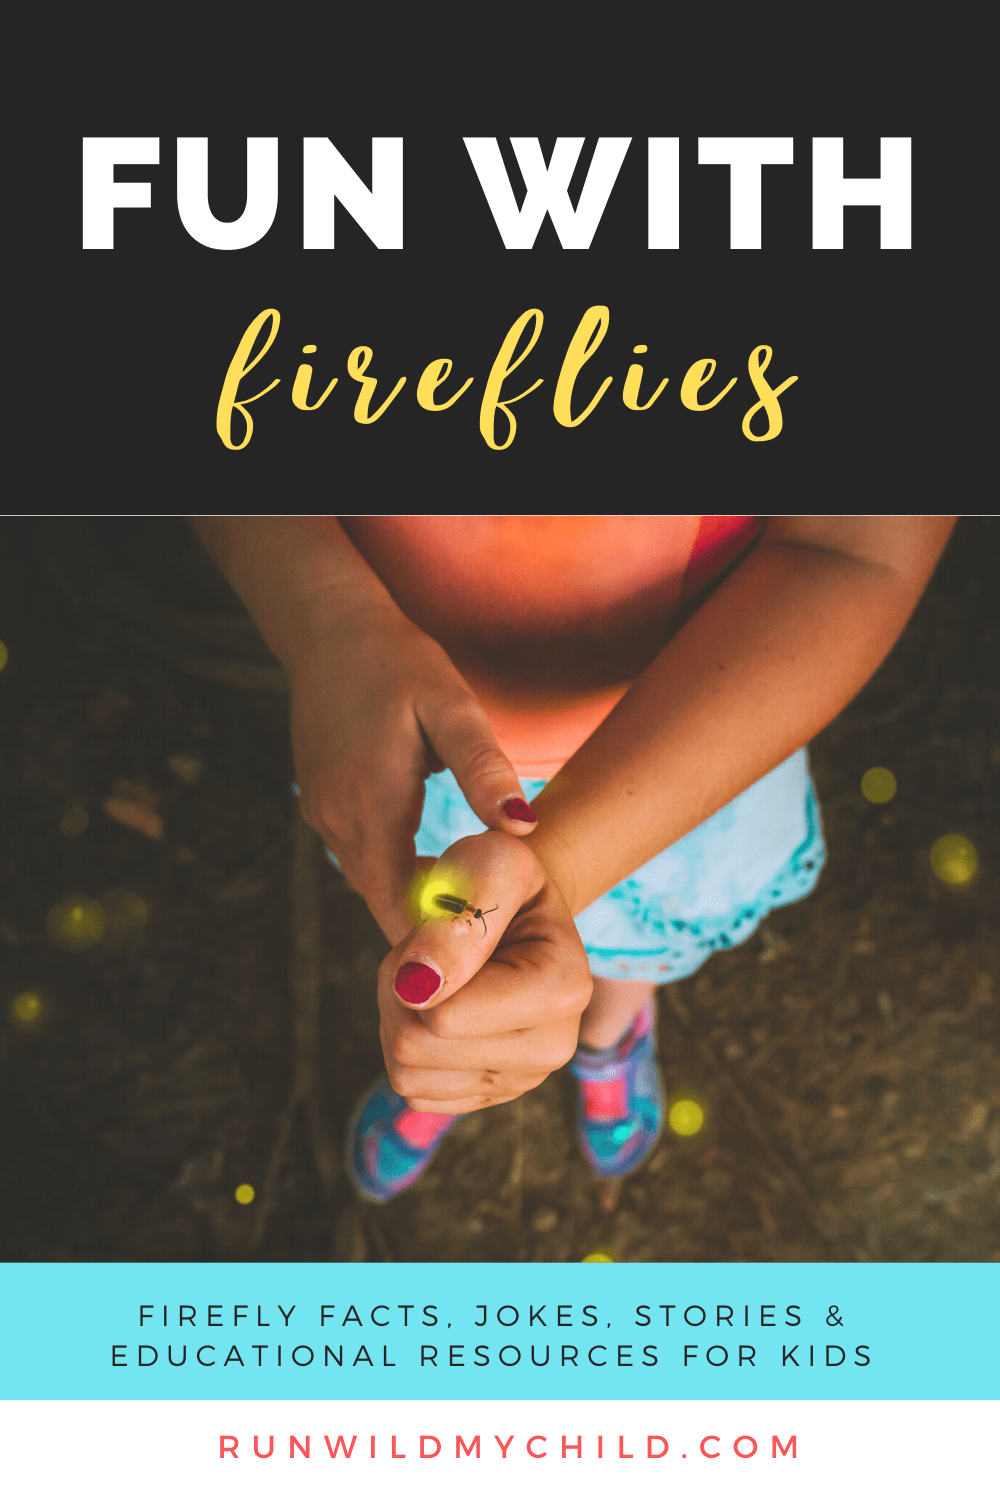 Fun with Fireflies - educational resources for kids & nature study materials